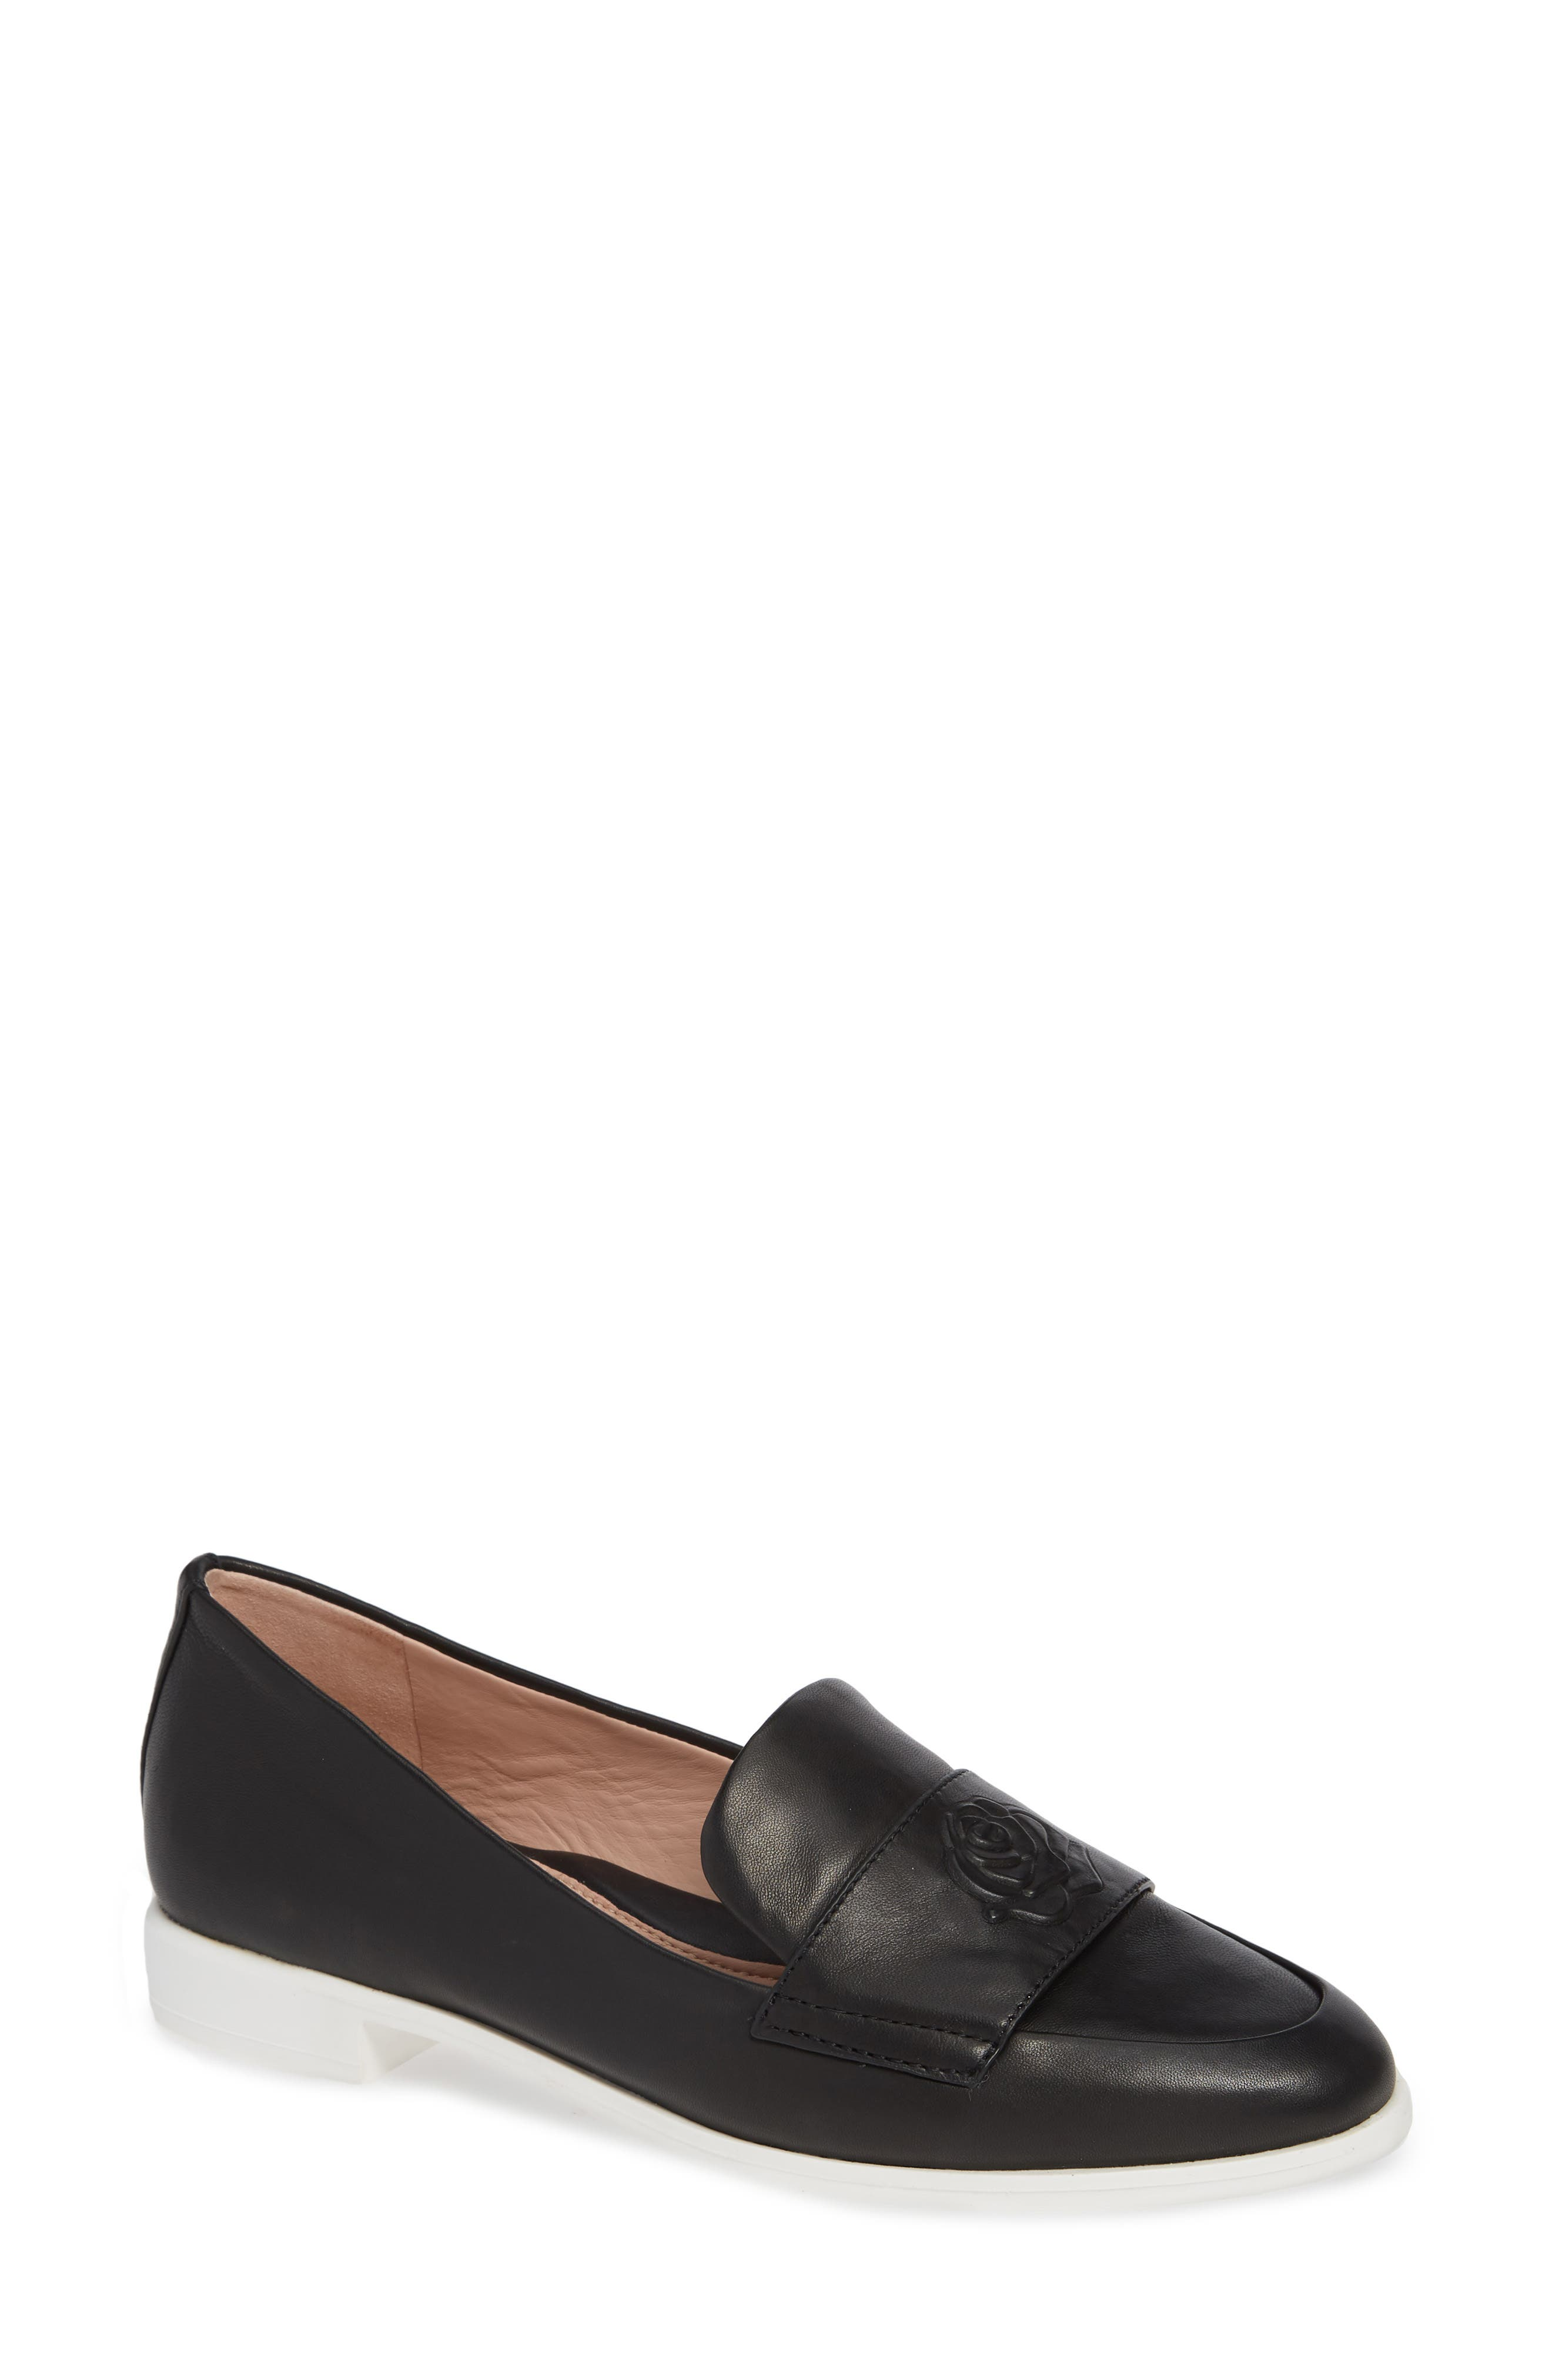 TARYN ROSE Blossom Slip-On Loafers in Black Leather